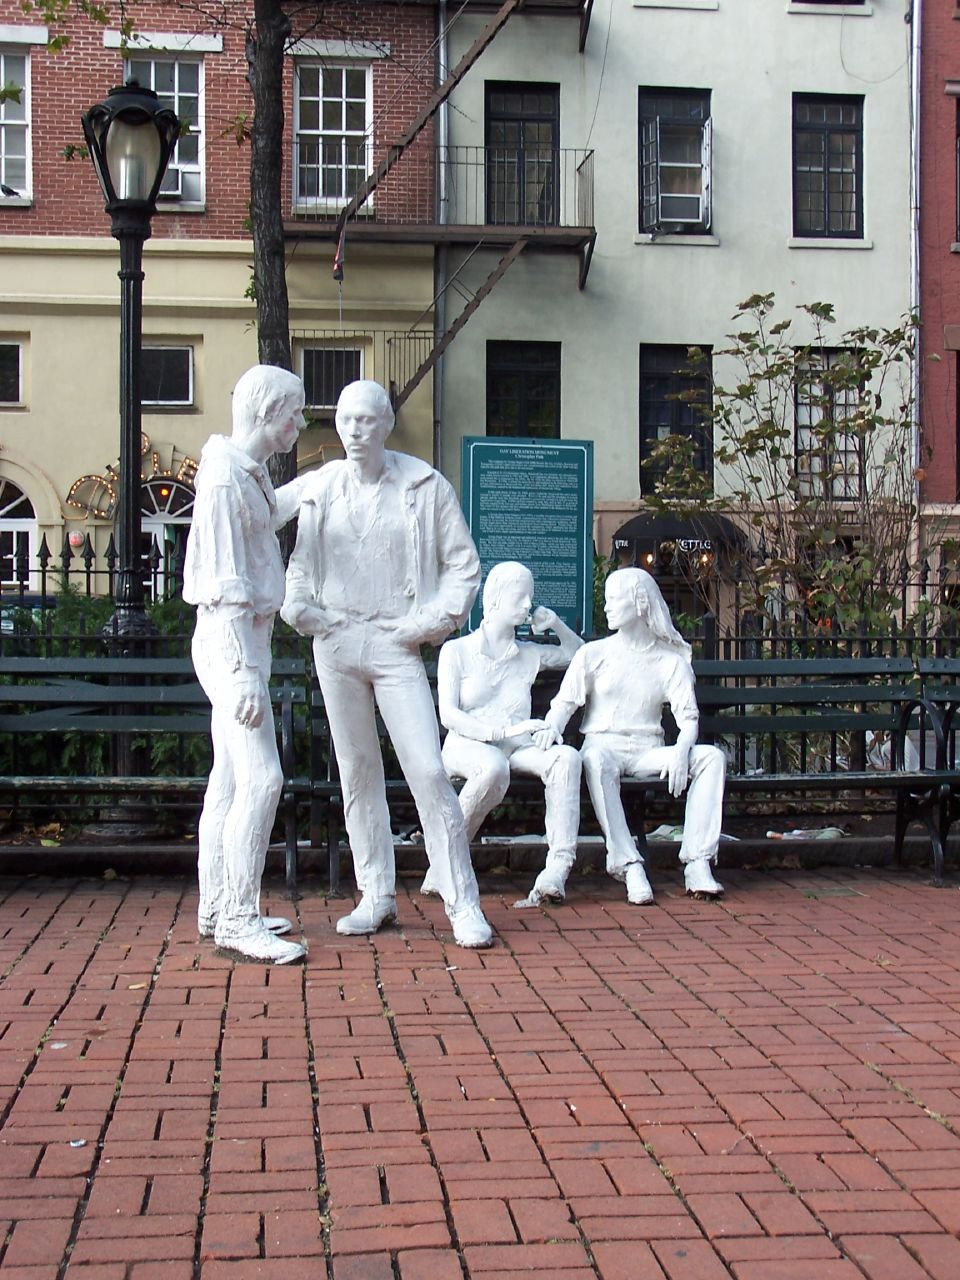 Gay Liberation Monument New York City 2006 animated lesbian oral sex